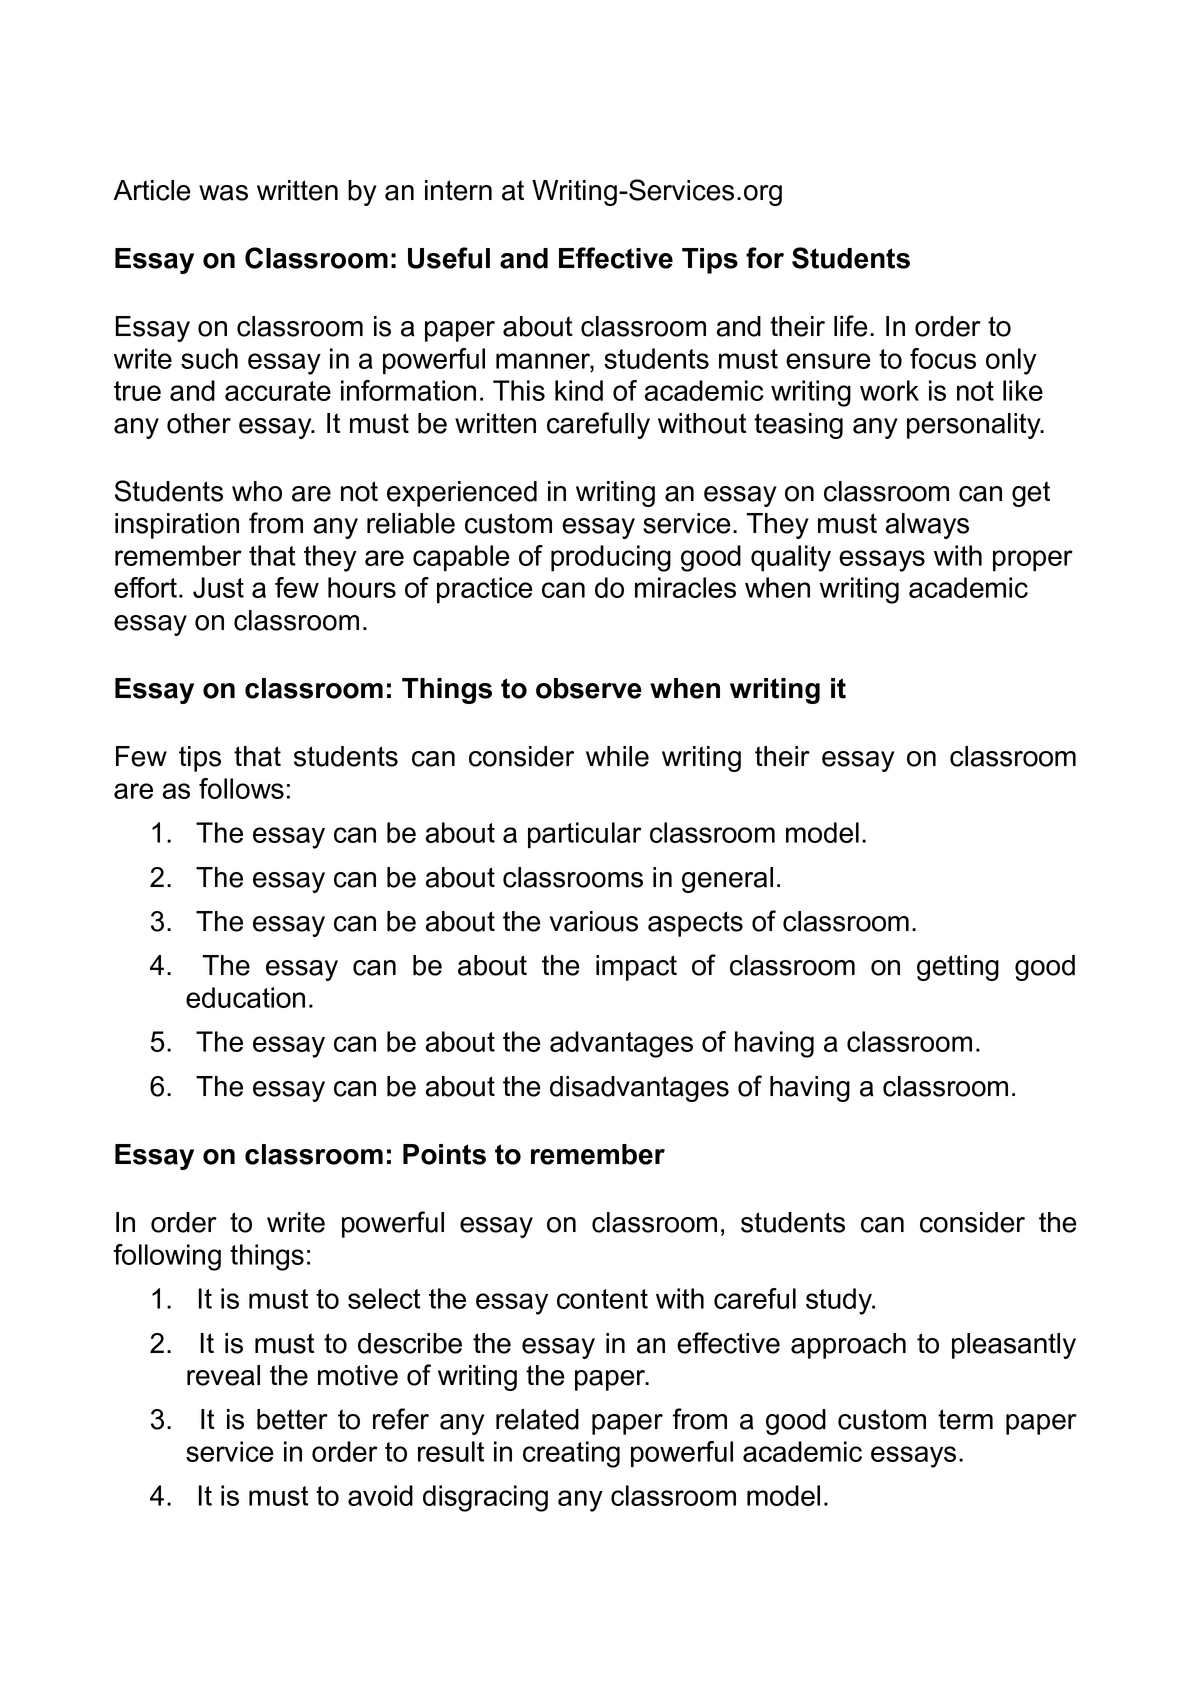 Samples Of Persuasive Essays For High School Students  College Essay Paper also High School Vs College Essay Calamo  Essay On Classroom Useful And Effective Tips For Students Essay Health Care